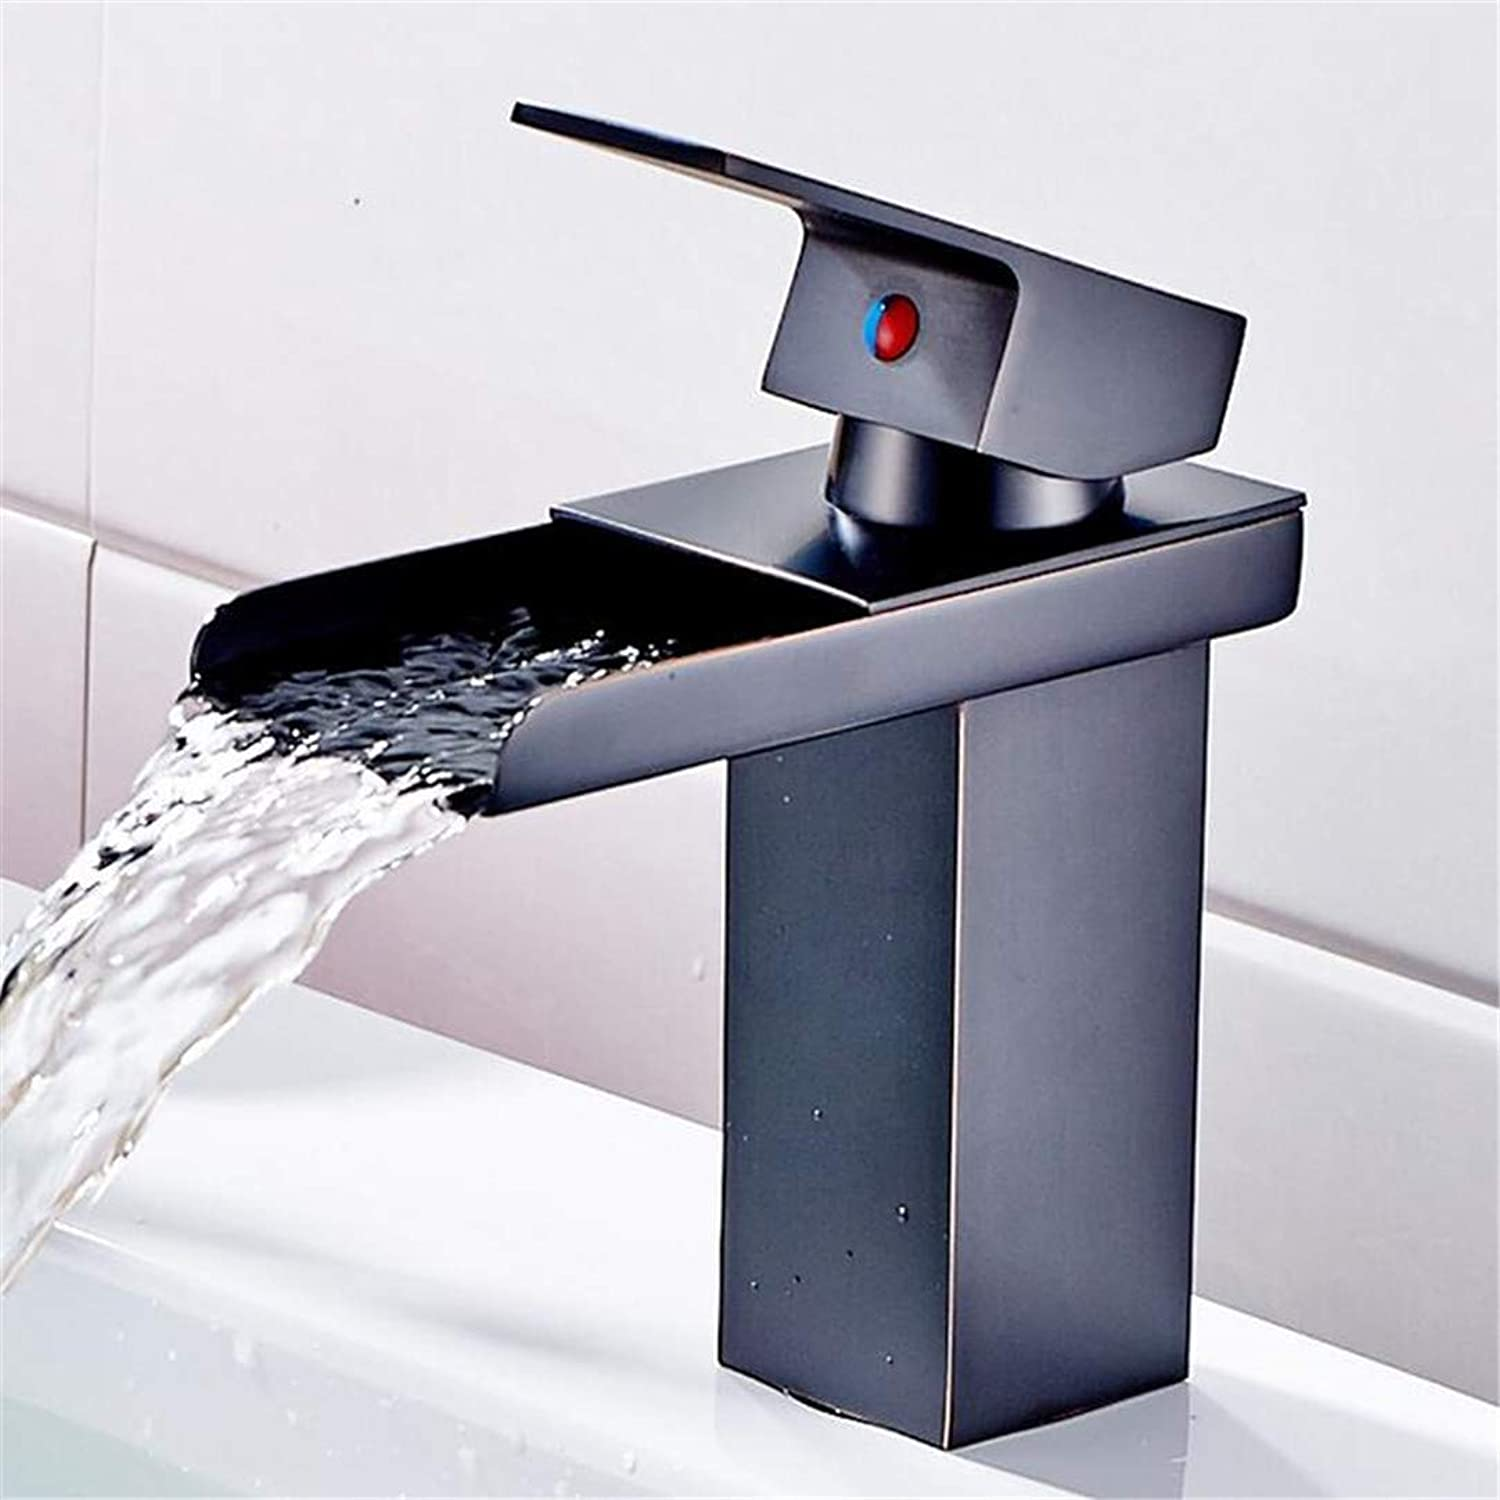 Faucet Washbasin Mixer Deck Mounted Sink Tap Orb Single Handle Mixer Taps Single Holder Hot and Cold Water